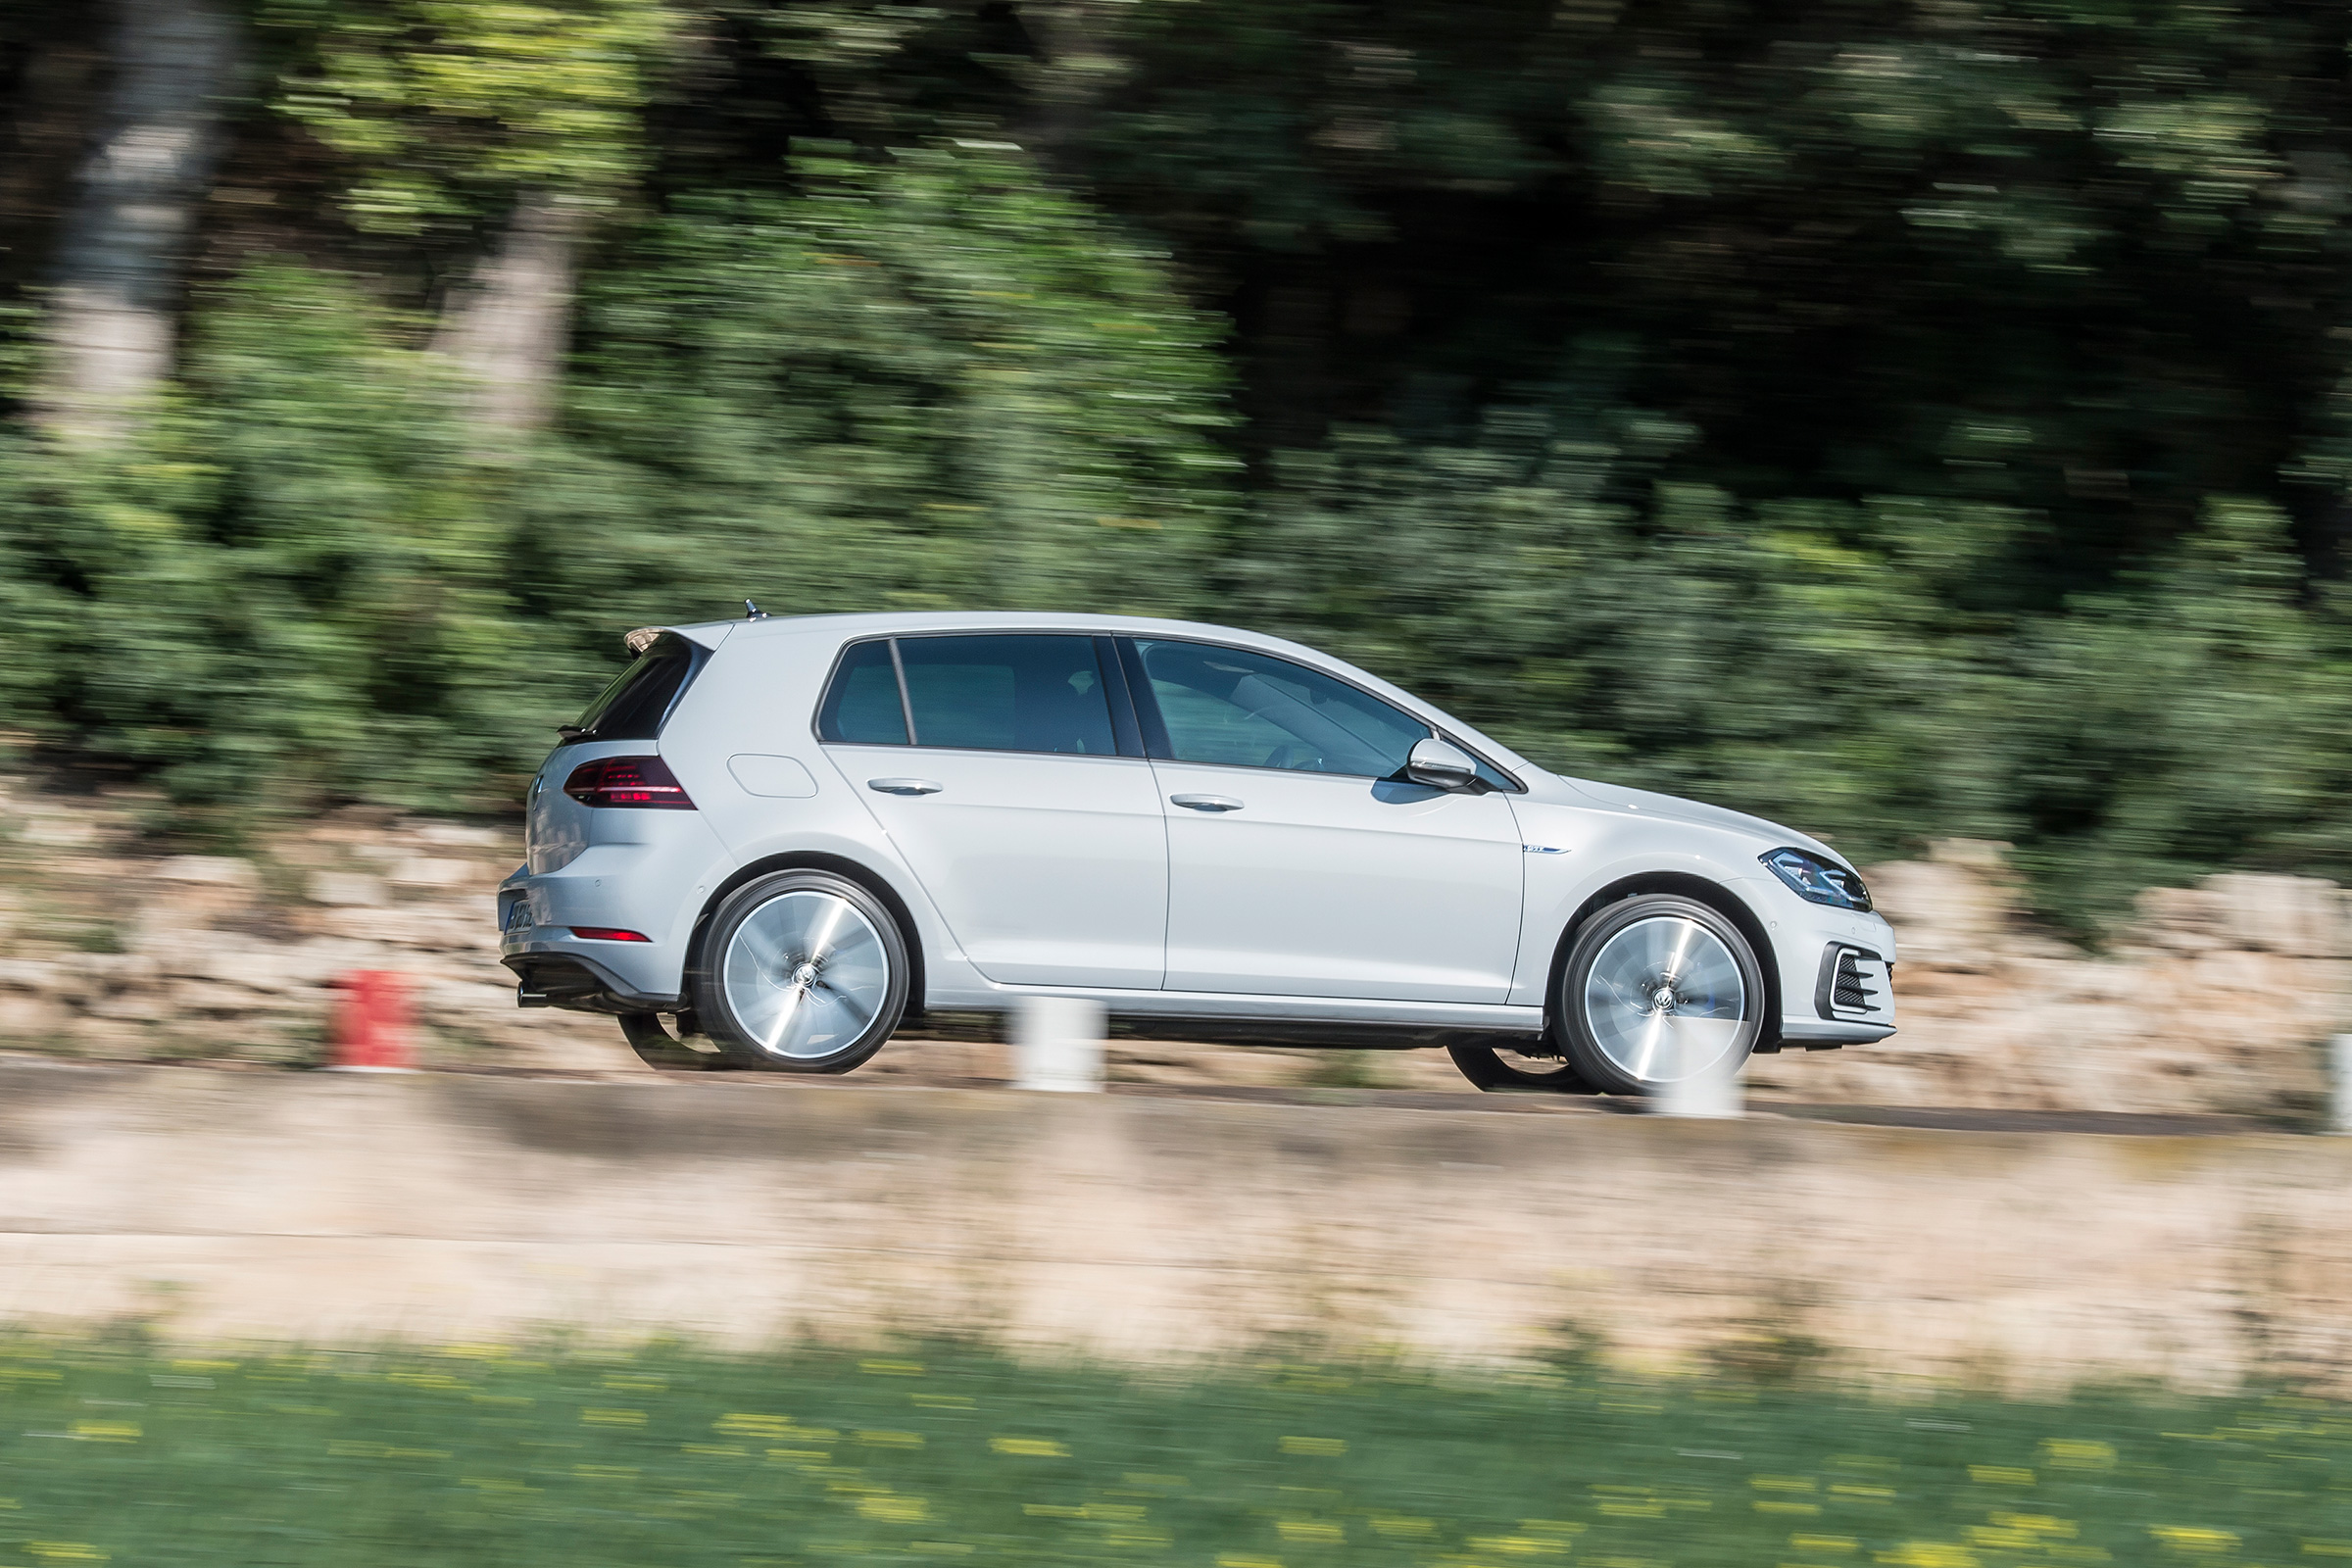 VW Golf GTI vs VW Golf GTE review - pictures | Evo